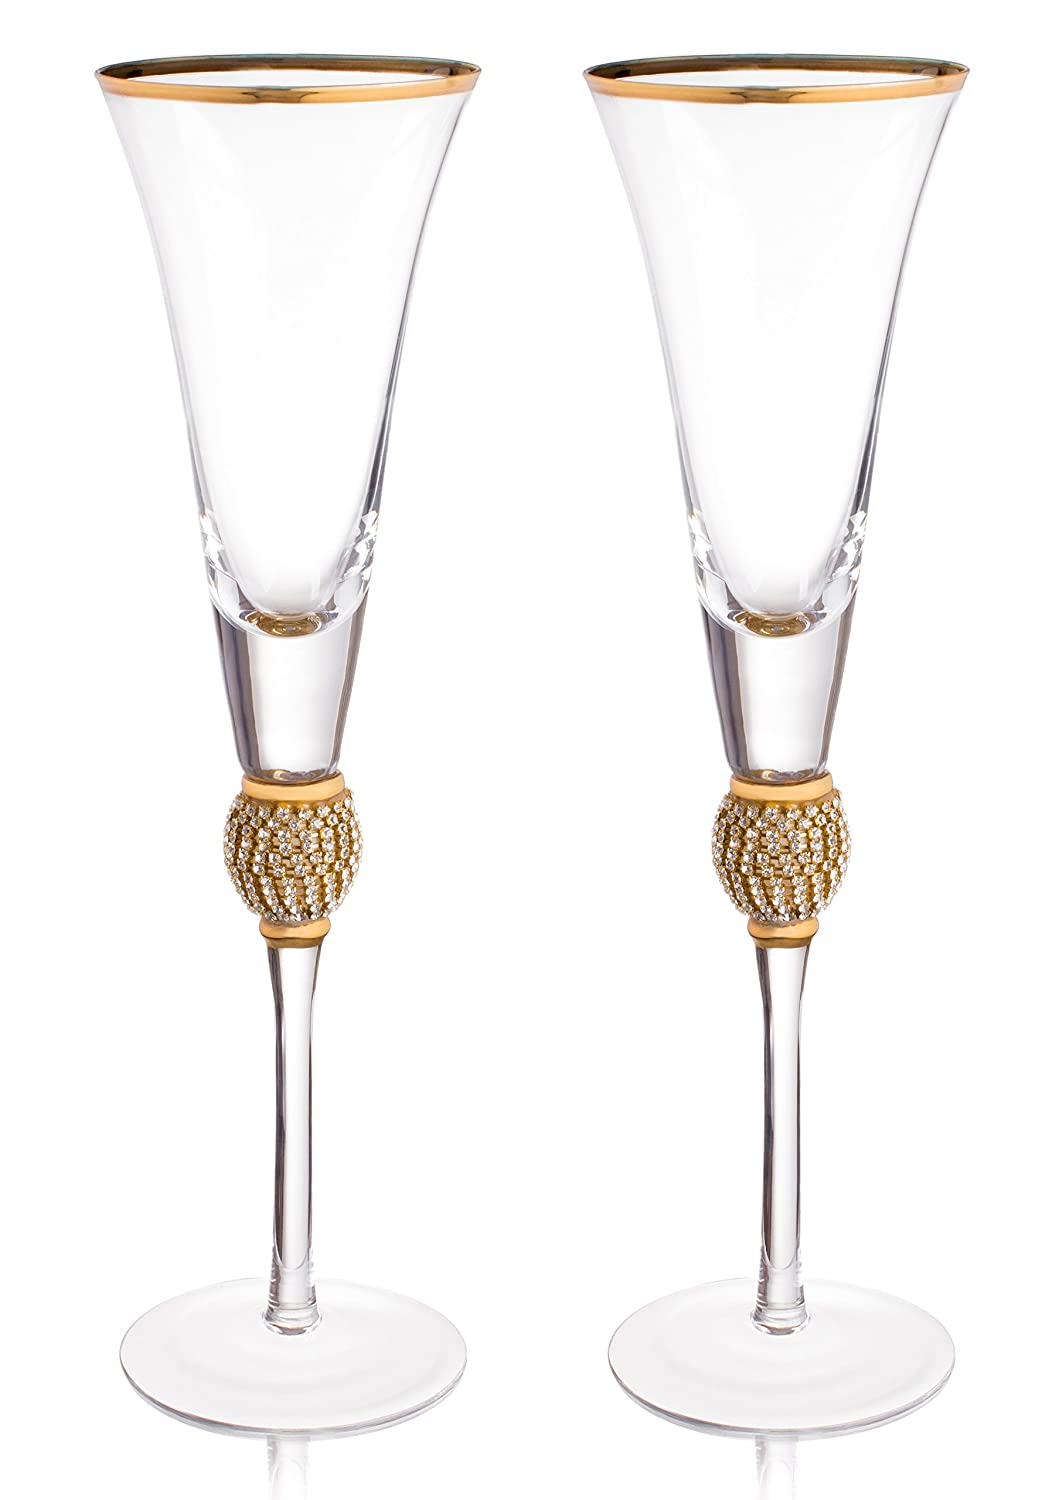 """Trinkware Wedding Champagne Flutes - Rhinestone""""DIAMOND"""" Studded Toasting Glasses With Gold Rim - Long Stem, 7oz, 11-inches Tall – Elegant Glassware And Stemware - Set of 2 For Bride And Groom"""